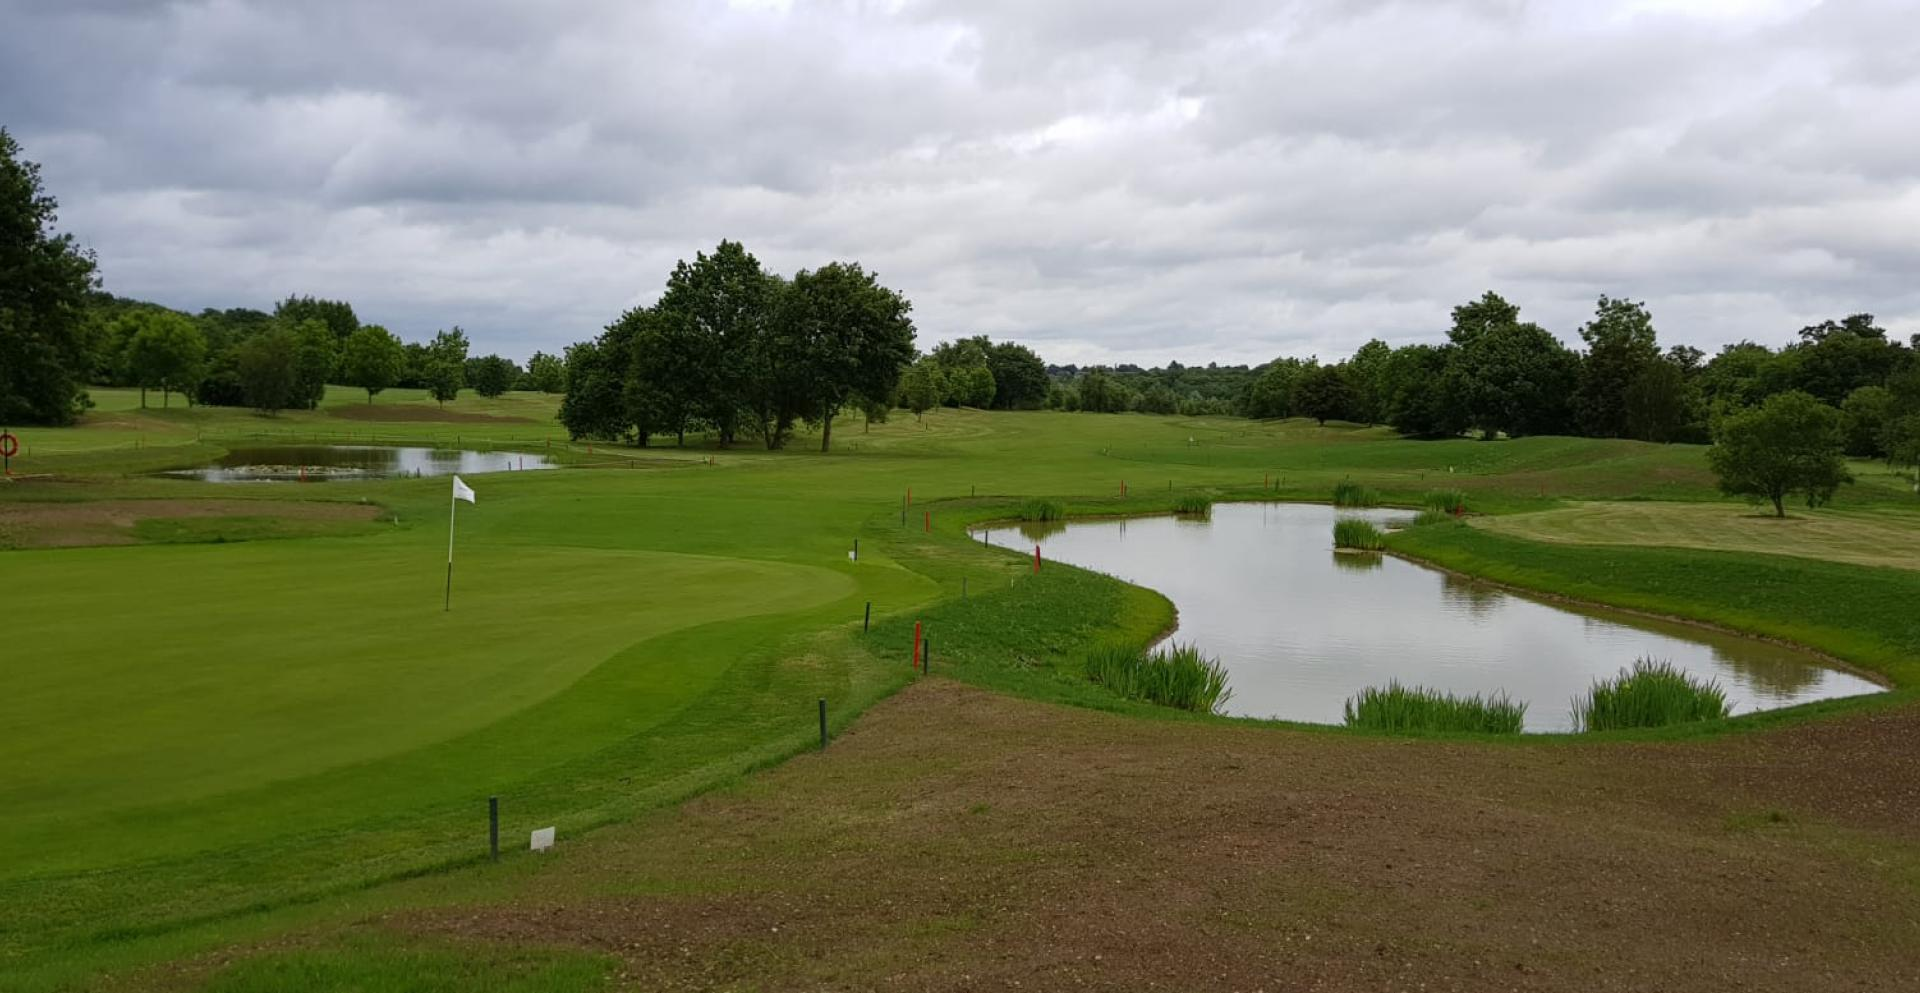 The Burstead Appoints SGD To Renovate Golf Course